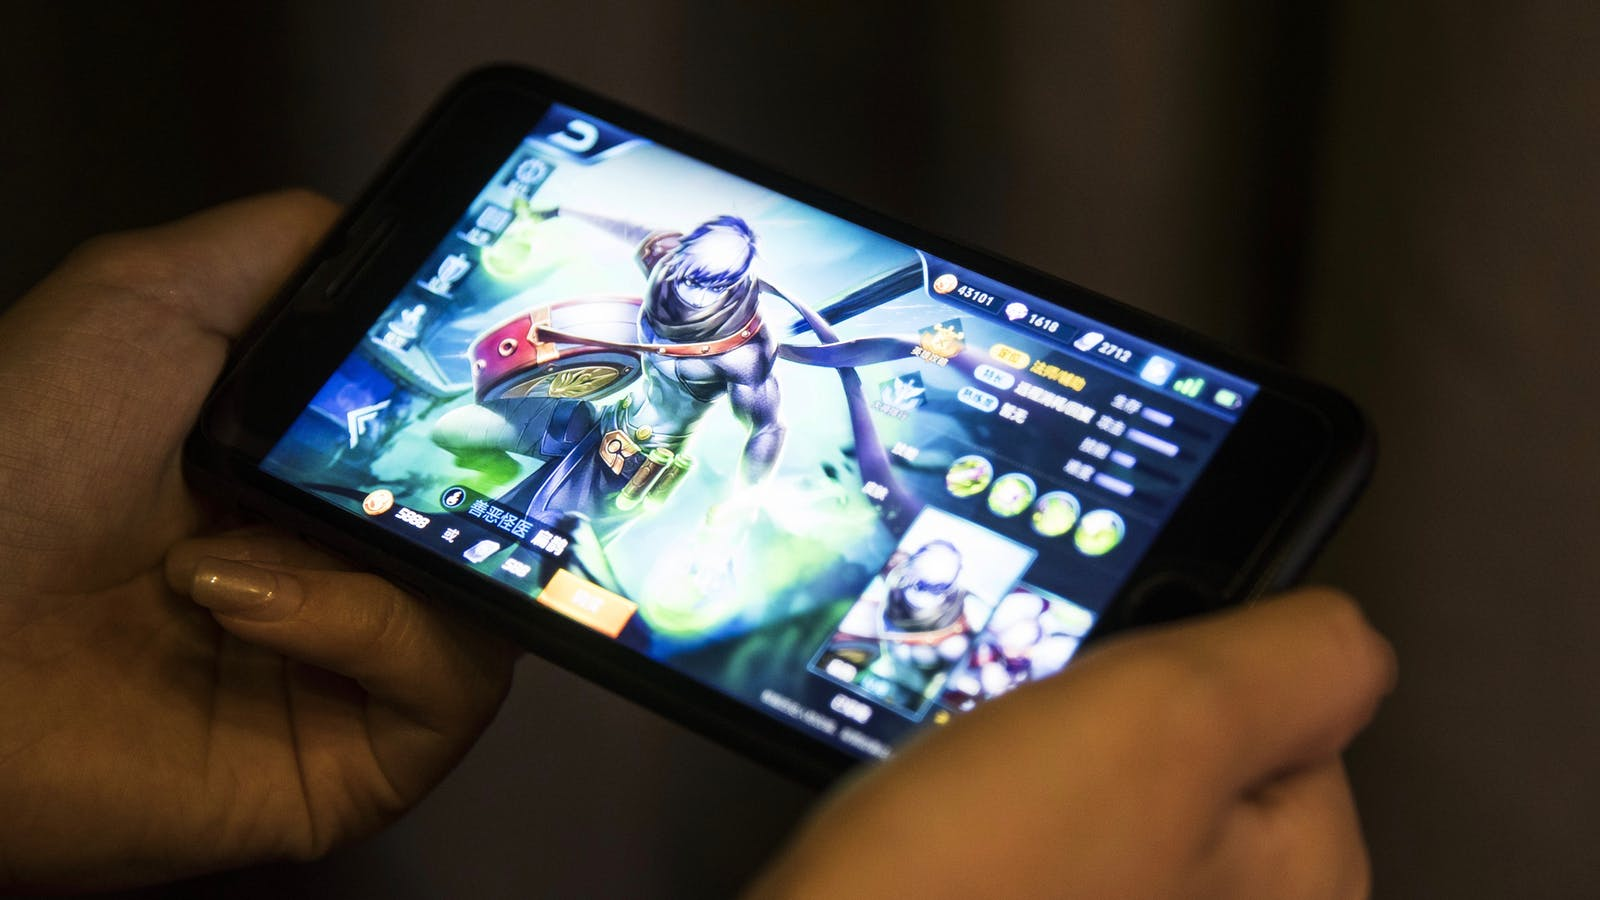 Tencent's Honor of Kings mobile game on an iPhone in Hong Kong last year. Photo by Bloomberg